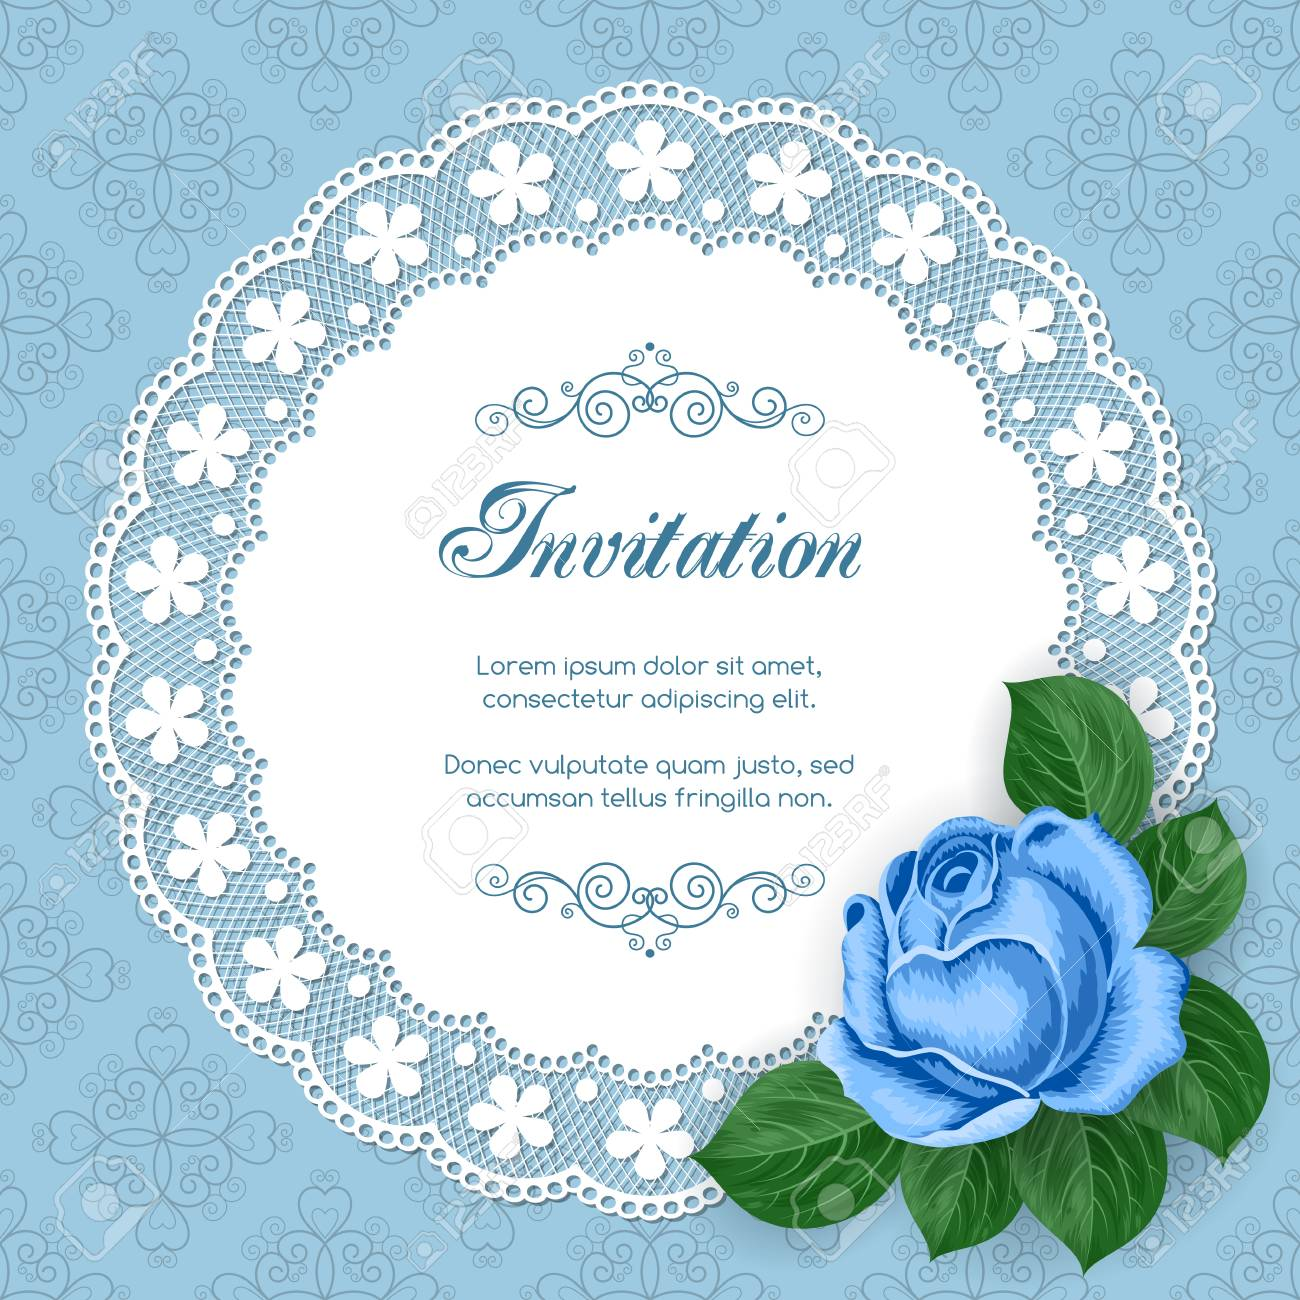 Vintage Floral Invitation Template With Hand Drawn Flowers And